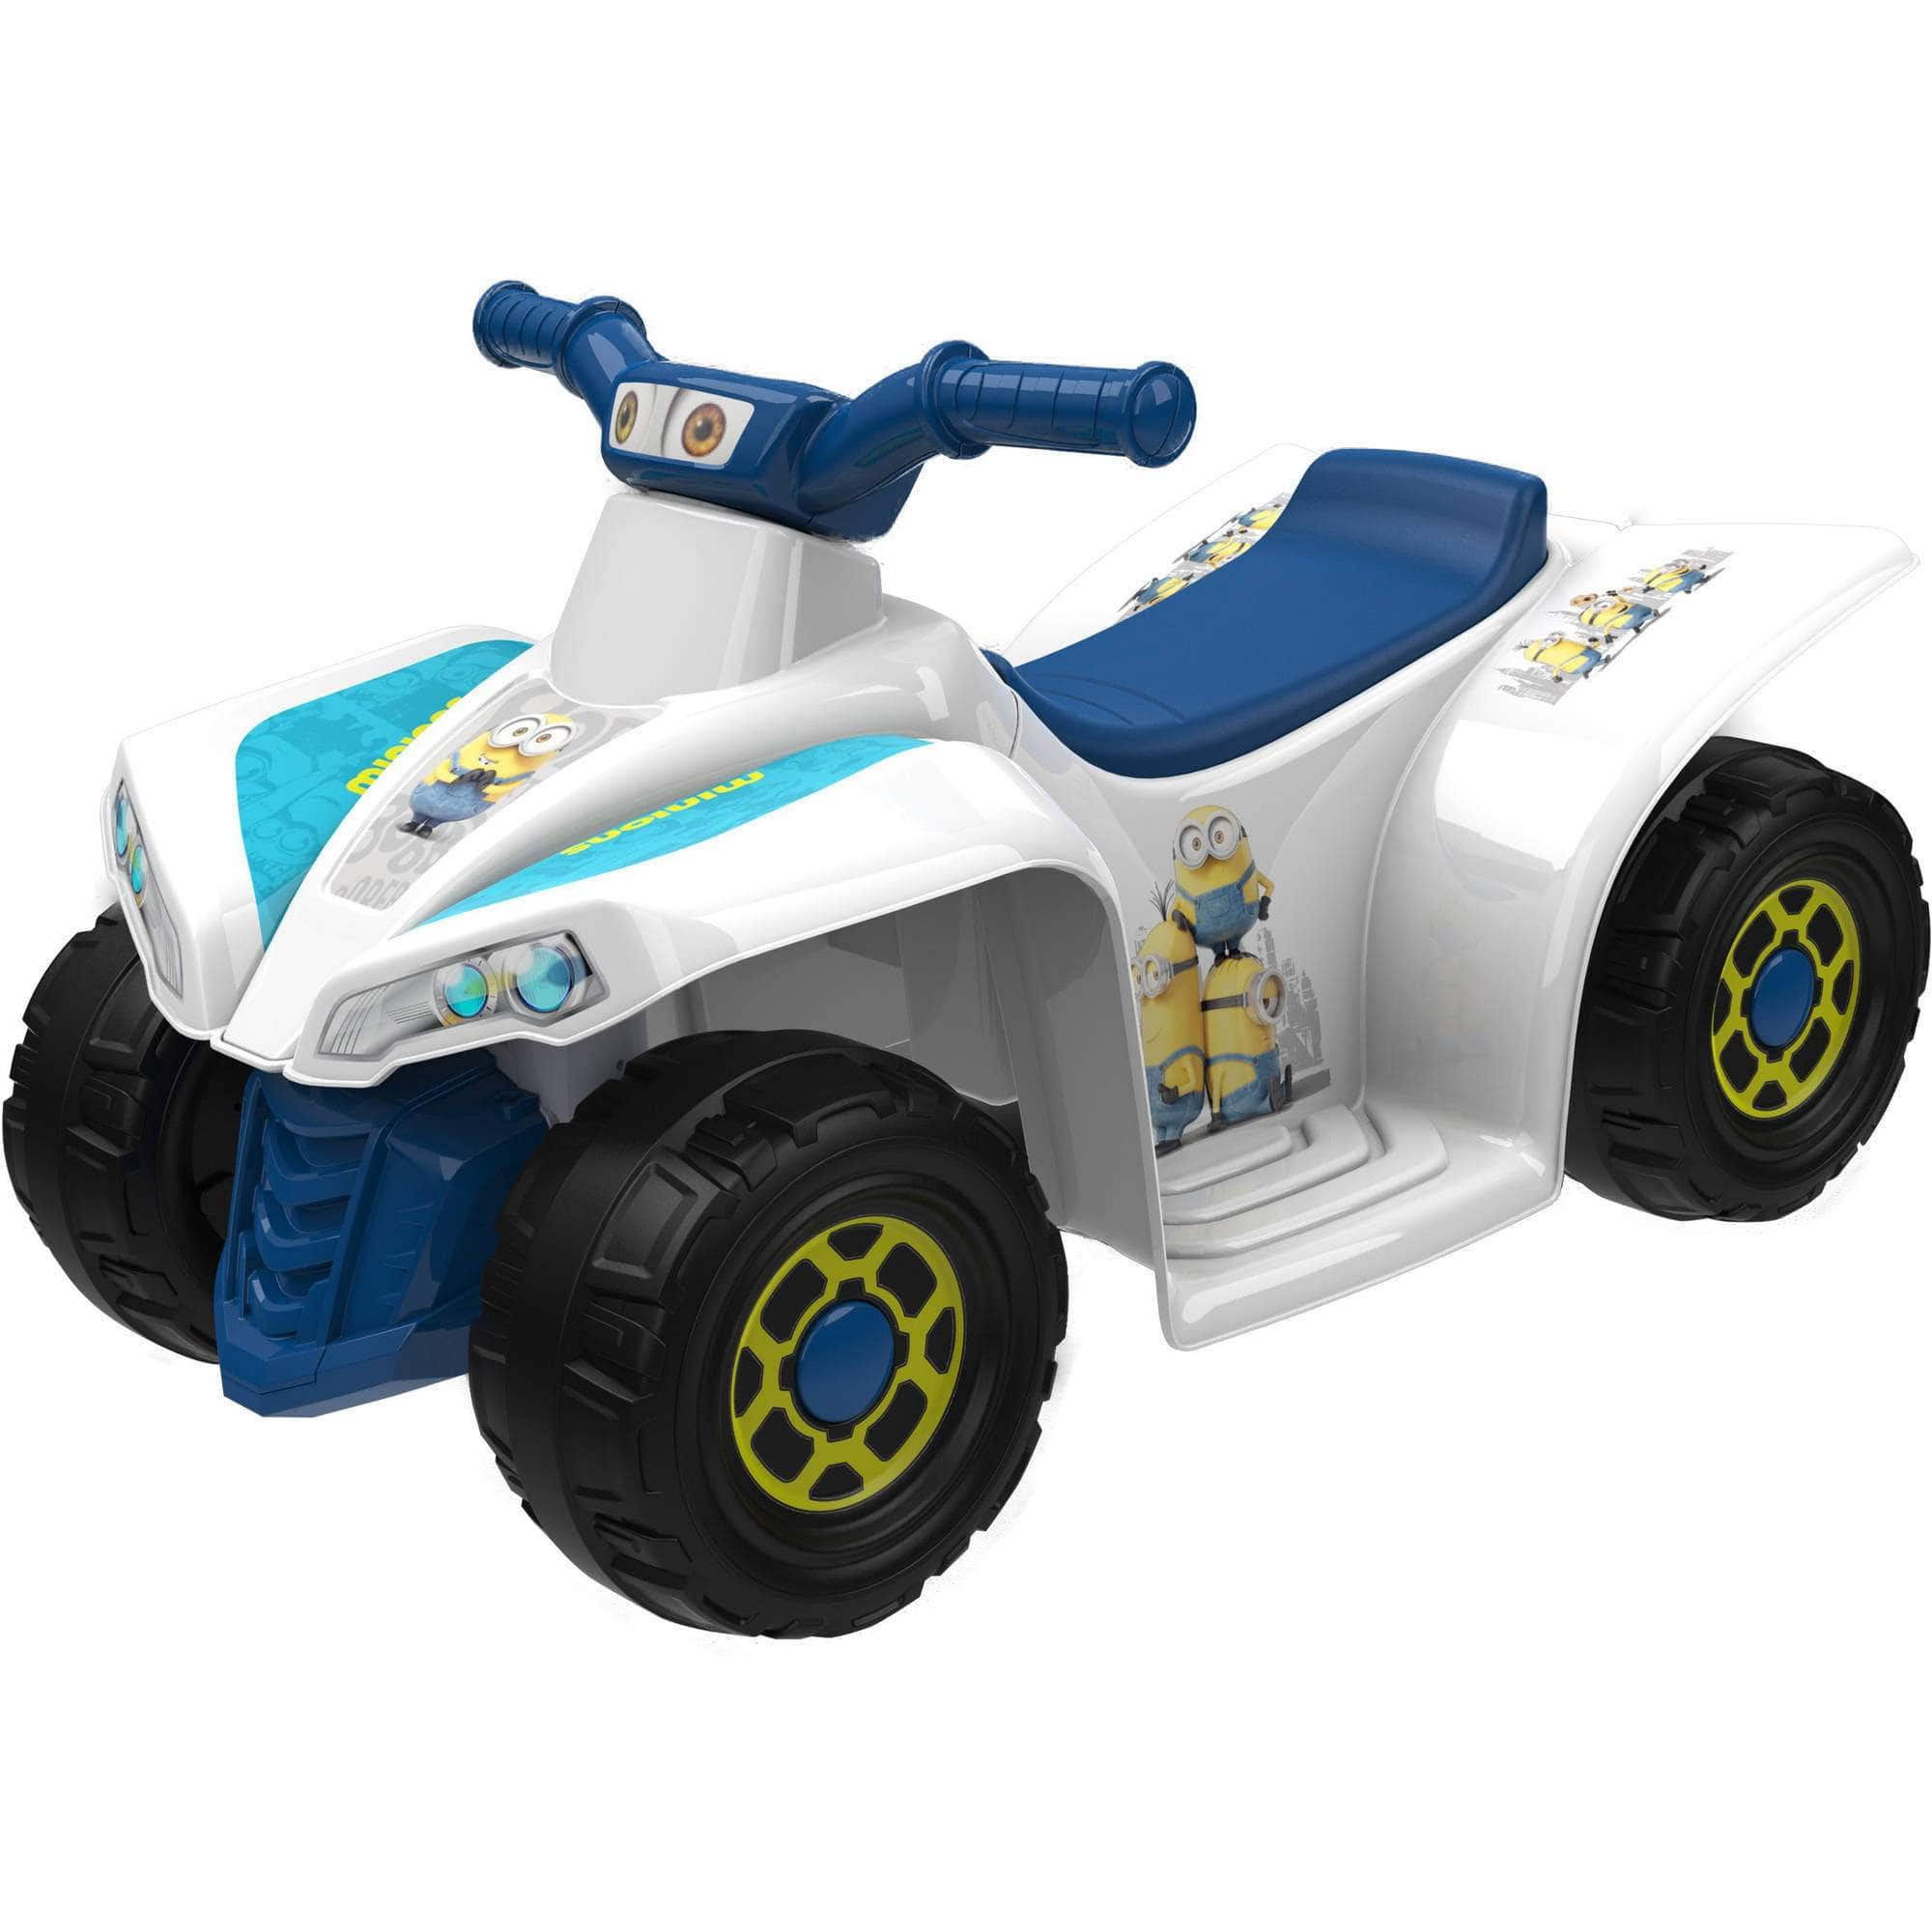 Dynacraft 6V Little Quad Electric Battery-Powered Ride-On (Minions) $39 + Free Store Pickup Walmart.com